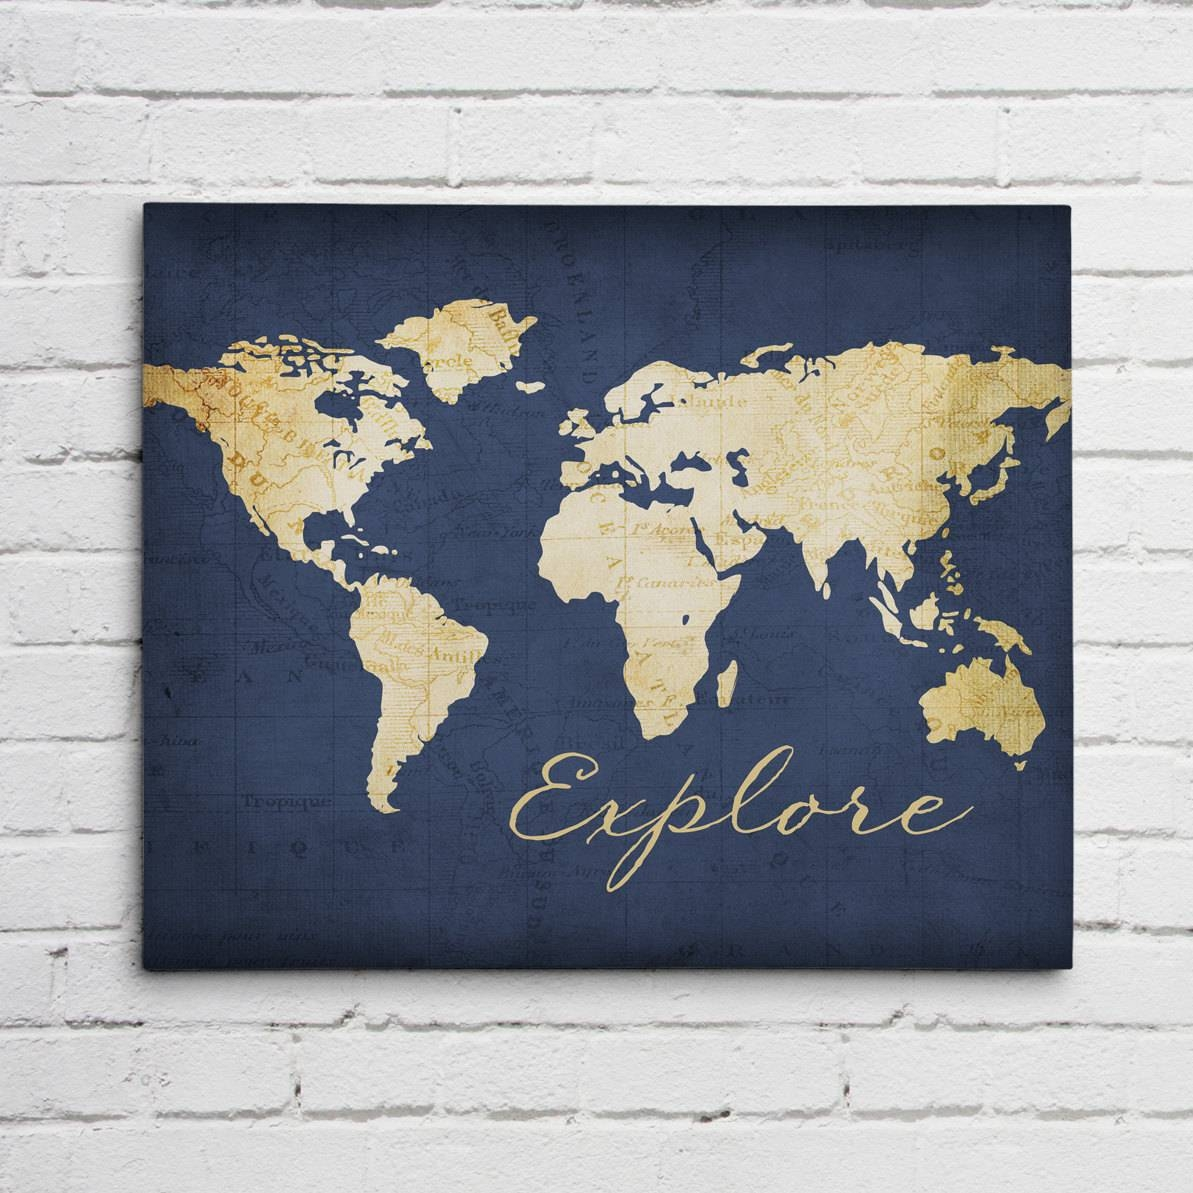 The Best Navy Blue Wall Art. Home Decorate. Home Decor Shopping. Rooms To Go Outlet Clearance. Farmhouse Decor Ideas. Penguin Party Decorations. Mirror Decals Home Decor. Discount Decorations. Decorating A Bar Cart